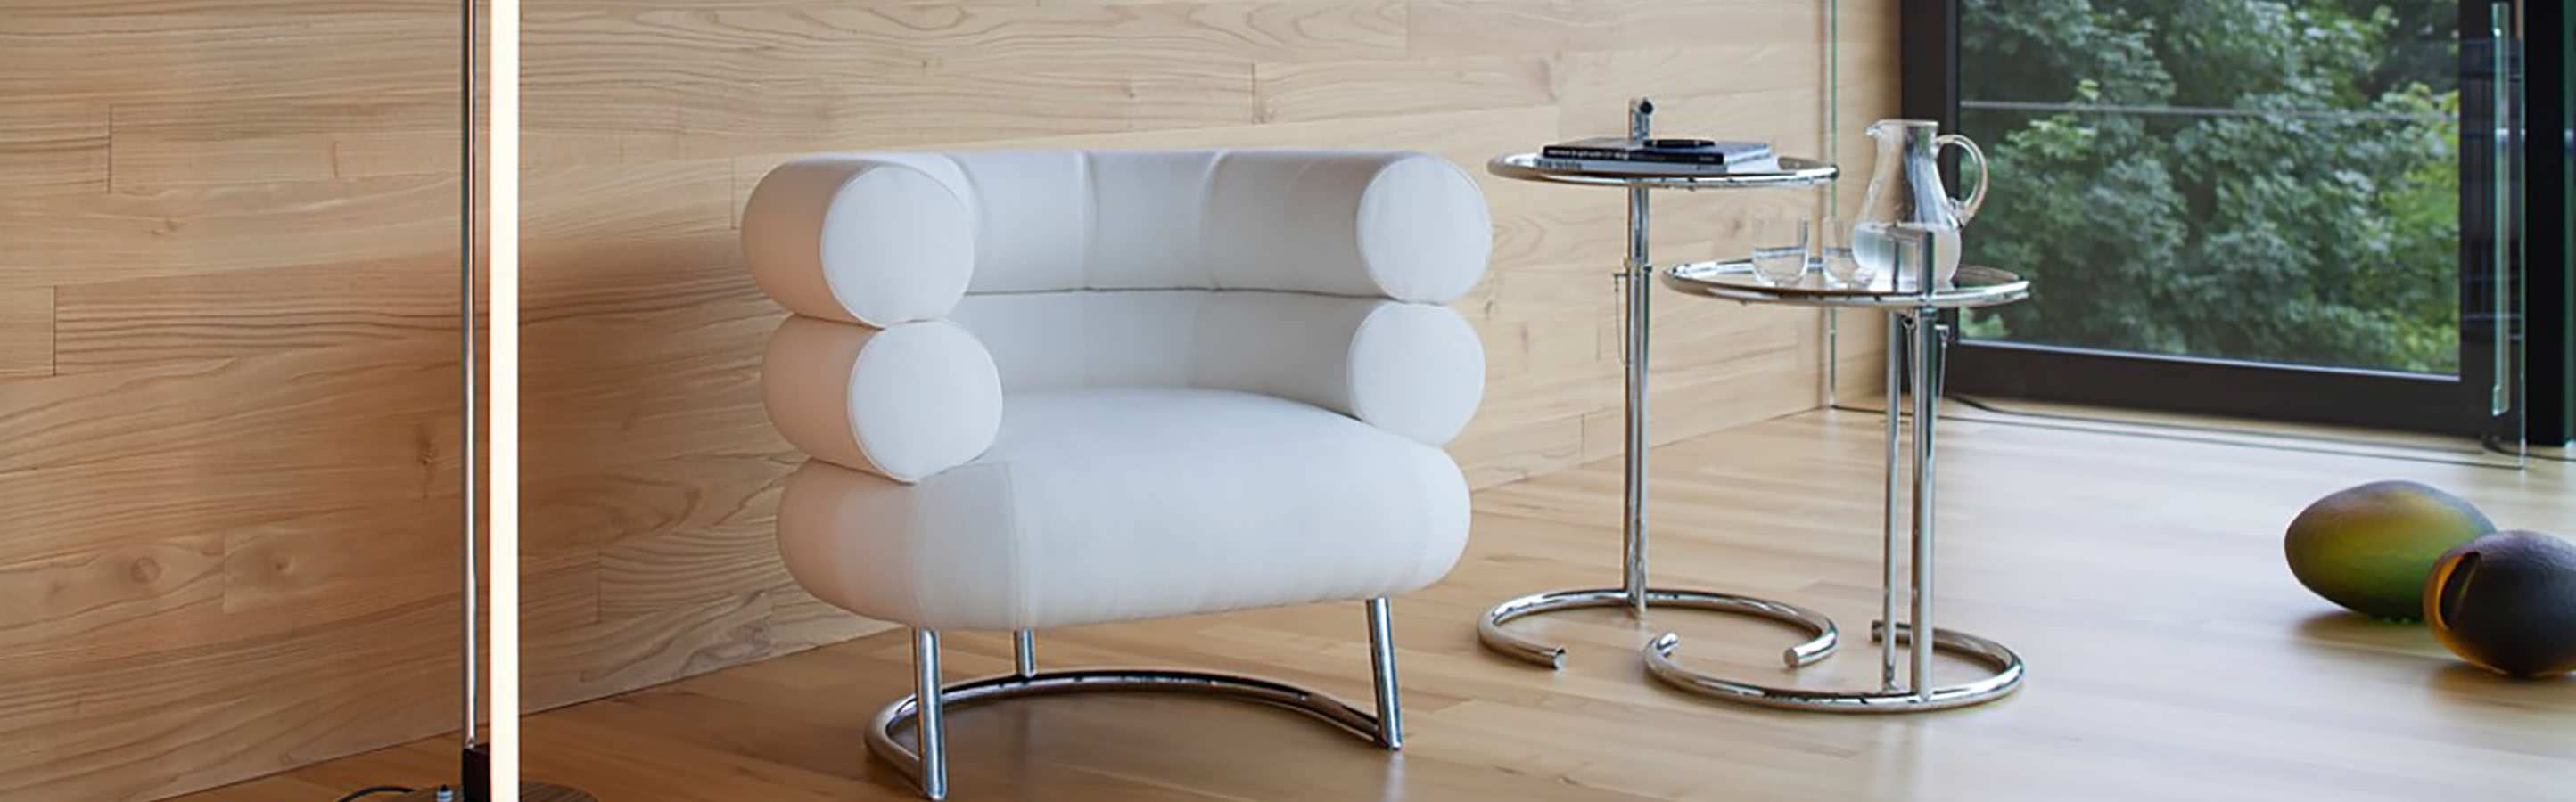 100 bibendum chair eileen gray wikipedia similar. Black Bedroom Furniture Sets. Home Design Ideas